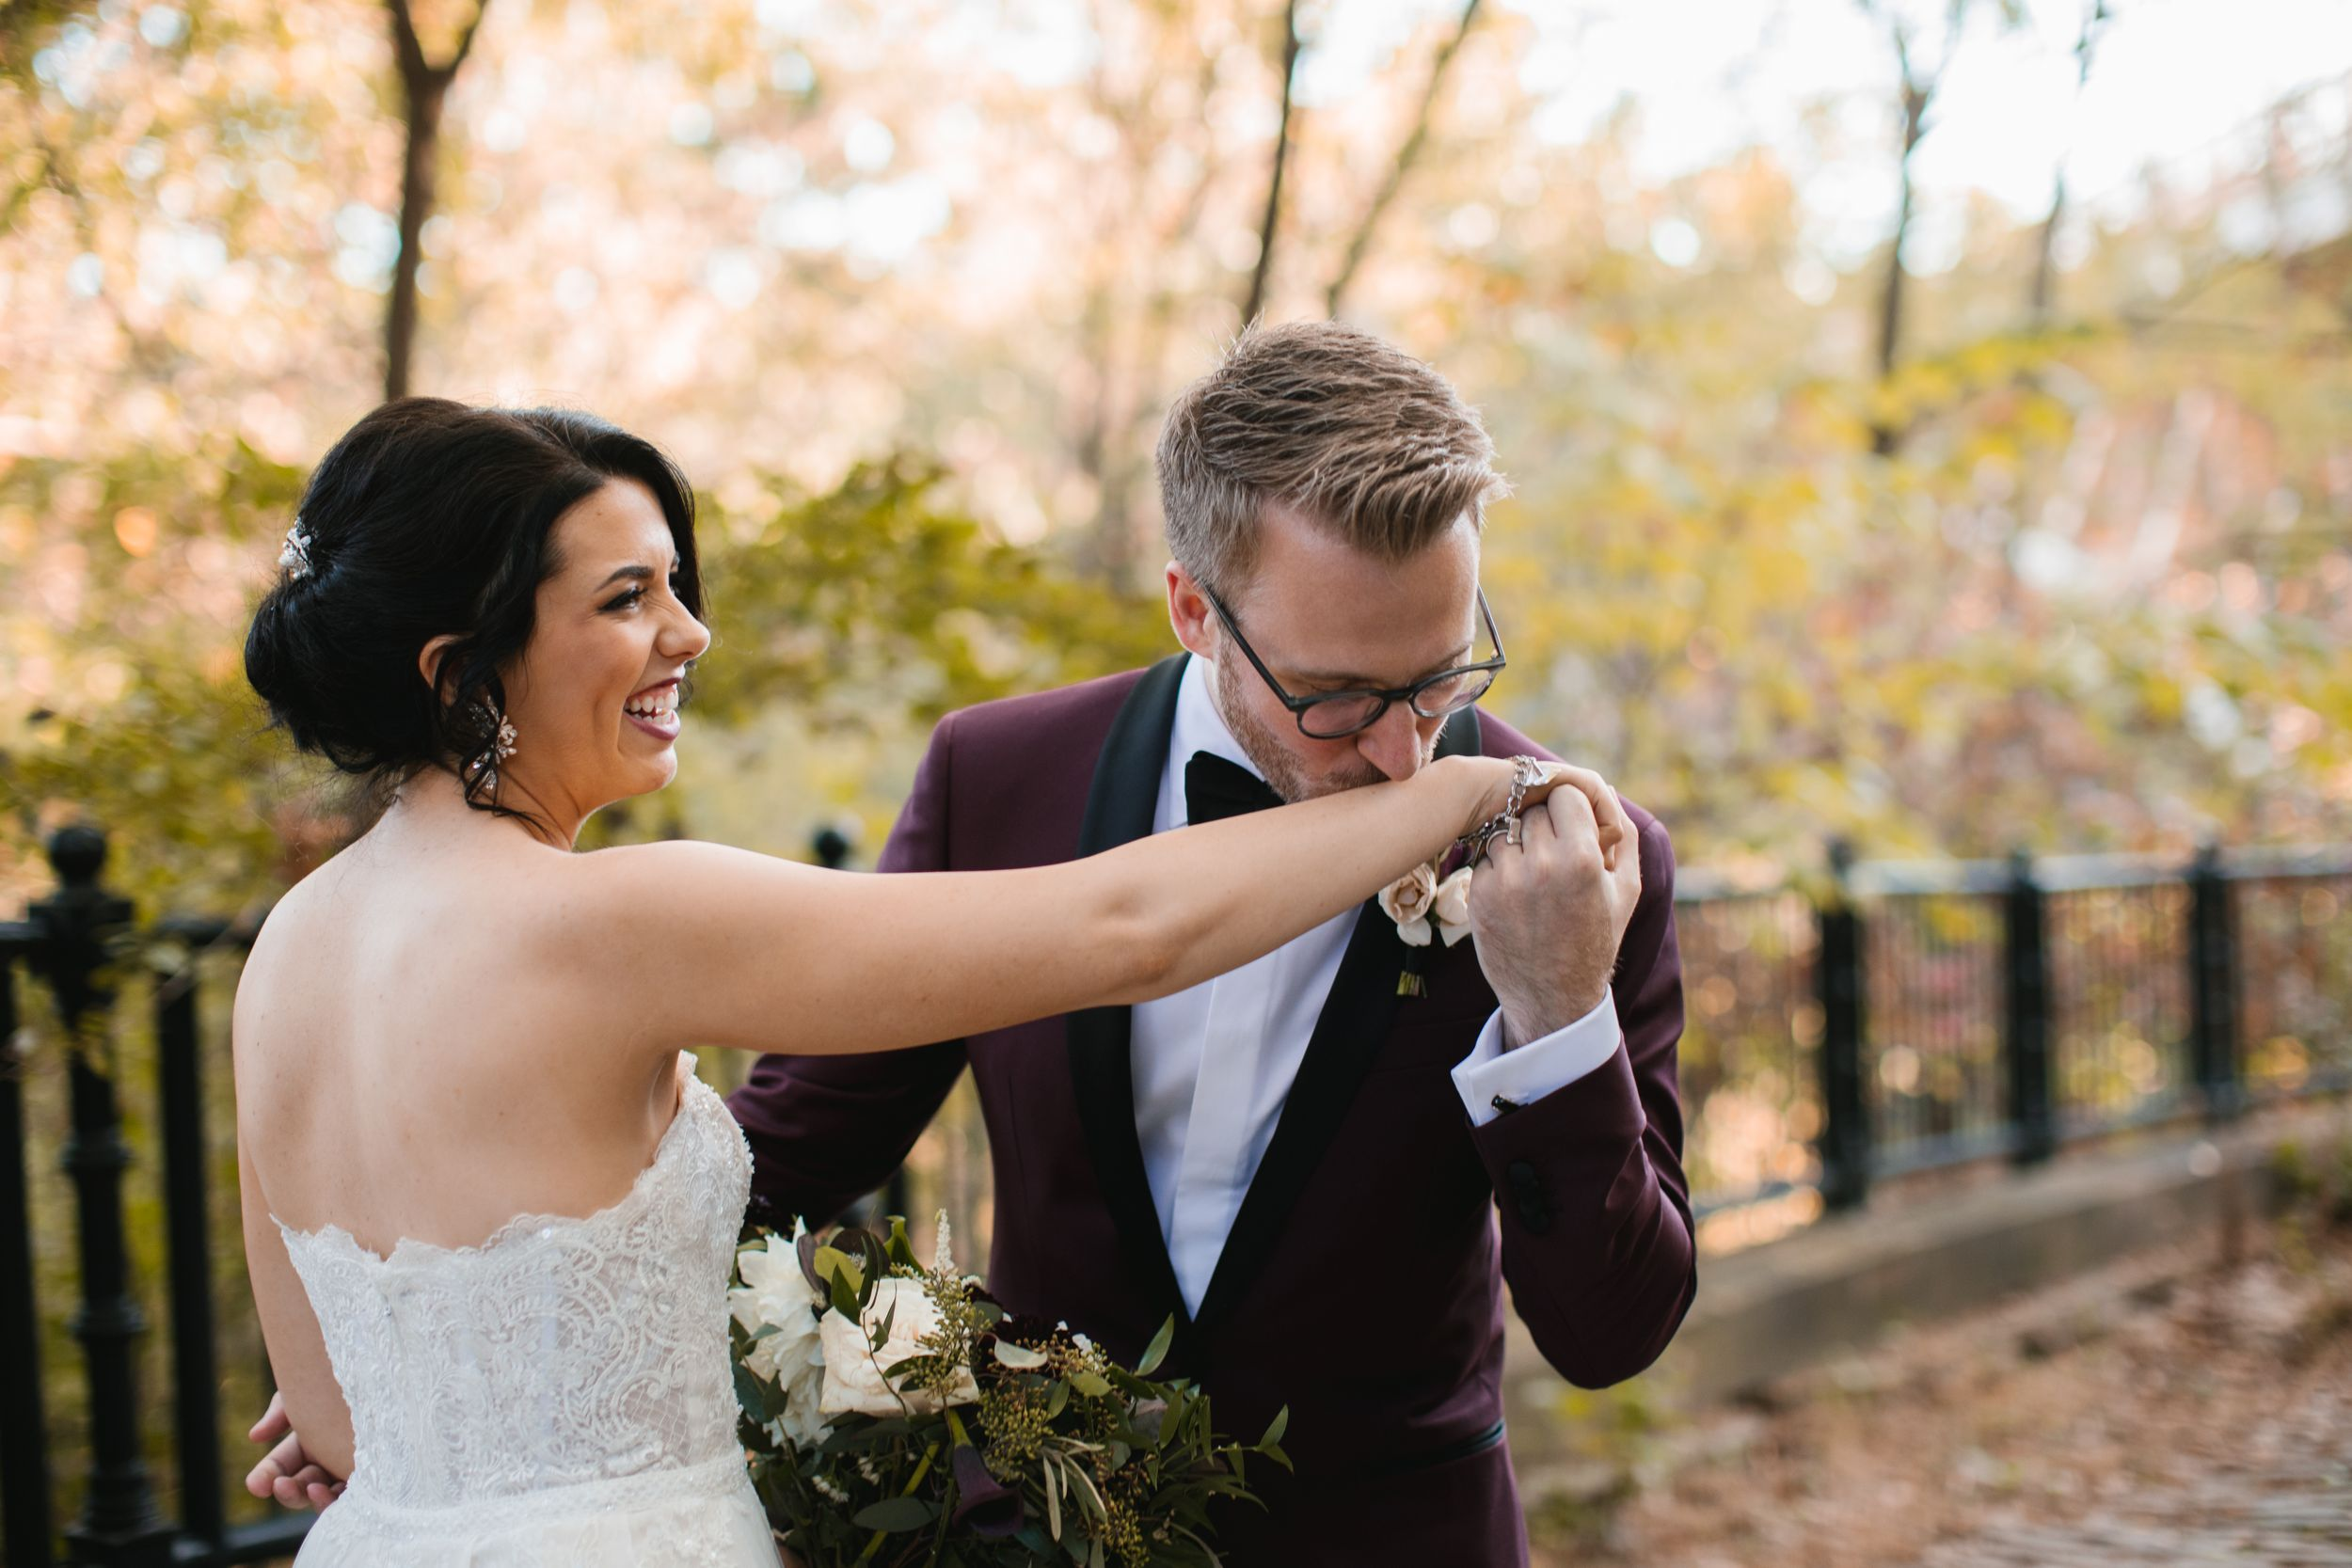 groom kissing brides hand while she laughs in park during fall